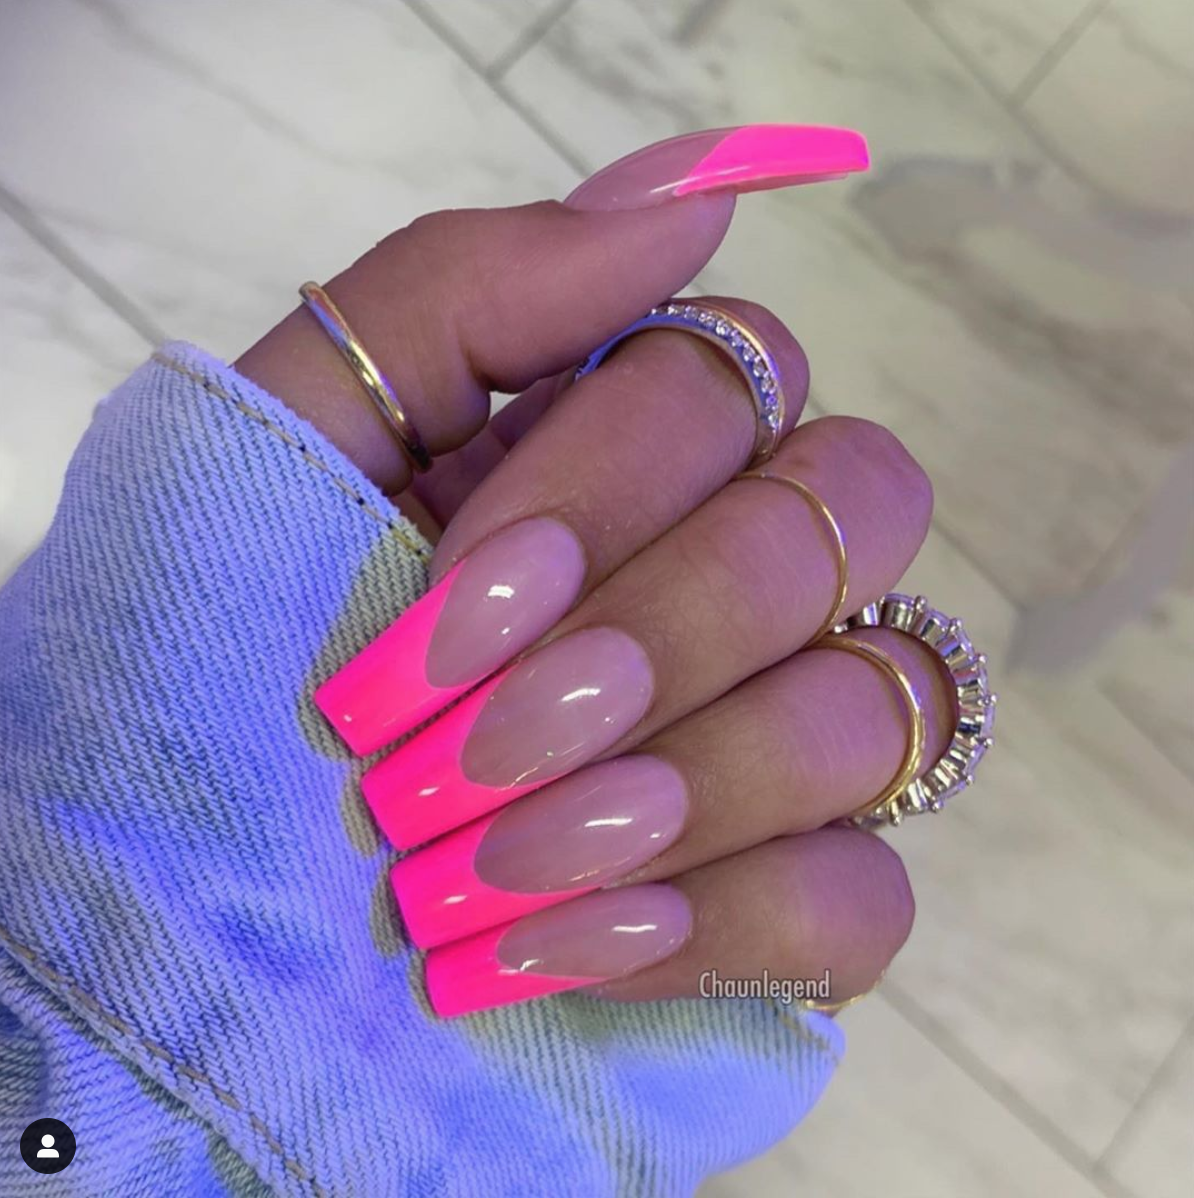 Barbie Dream Nails Heathersanders With The Major Nail Inspo Girlstour Sorella Dream Nails Pink Nails Pink Tip Nails